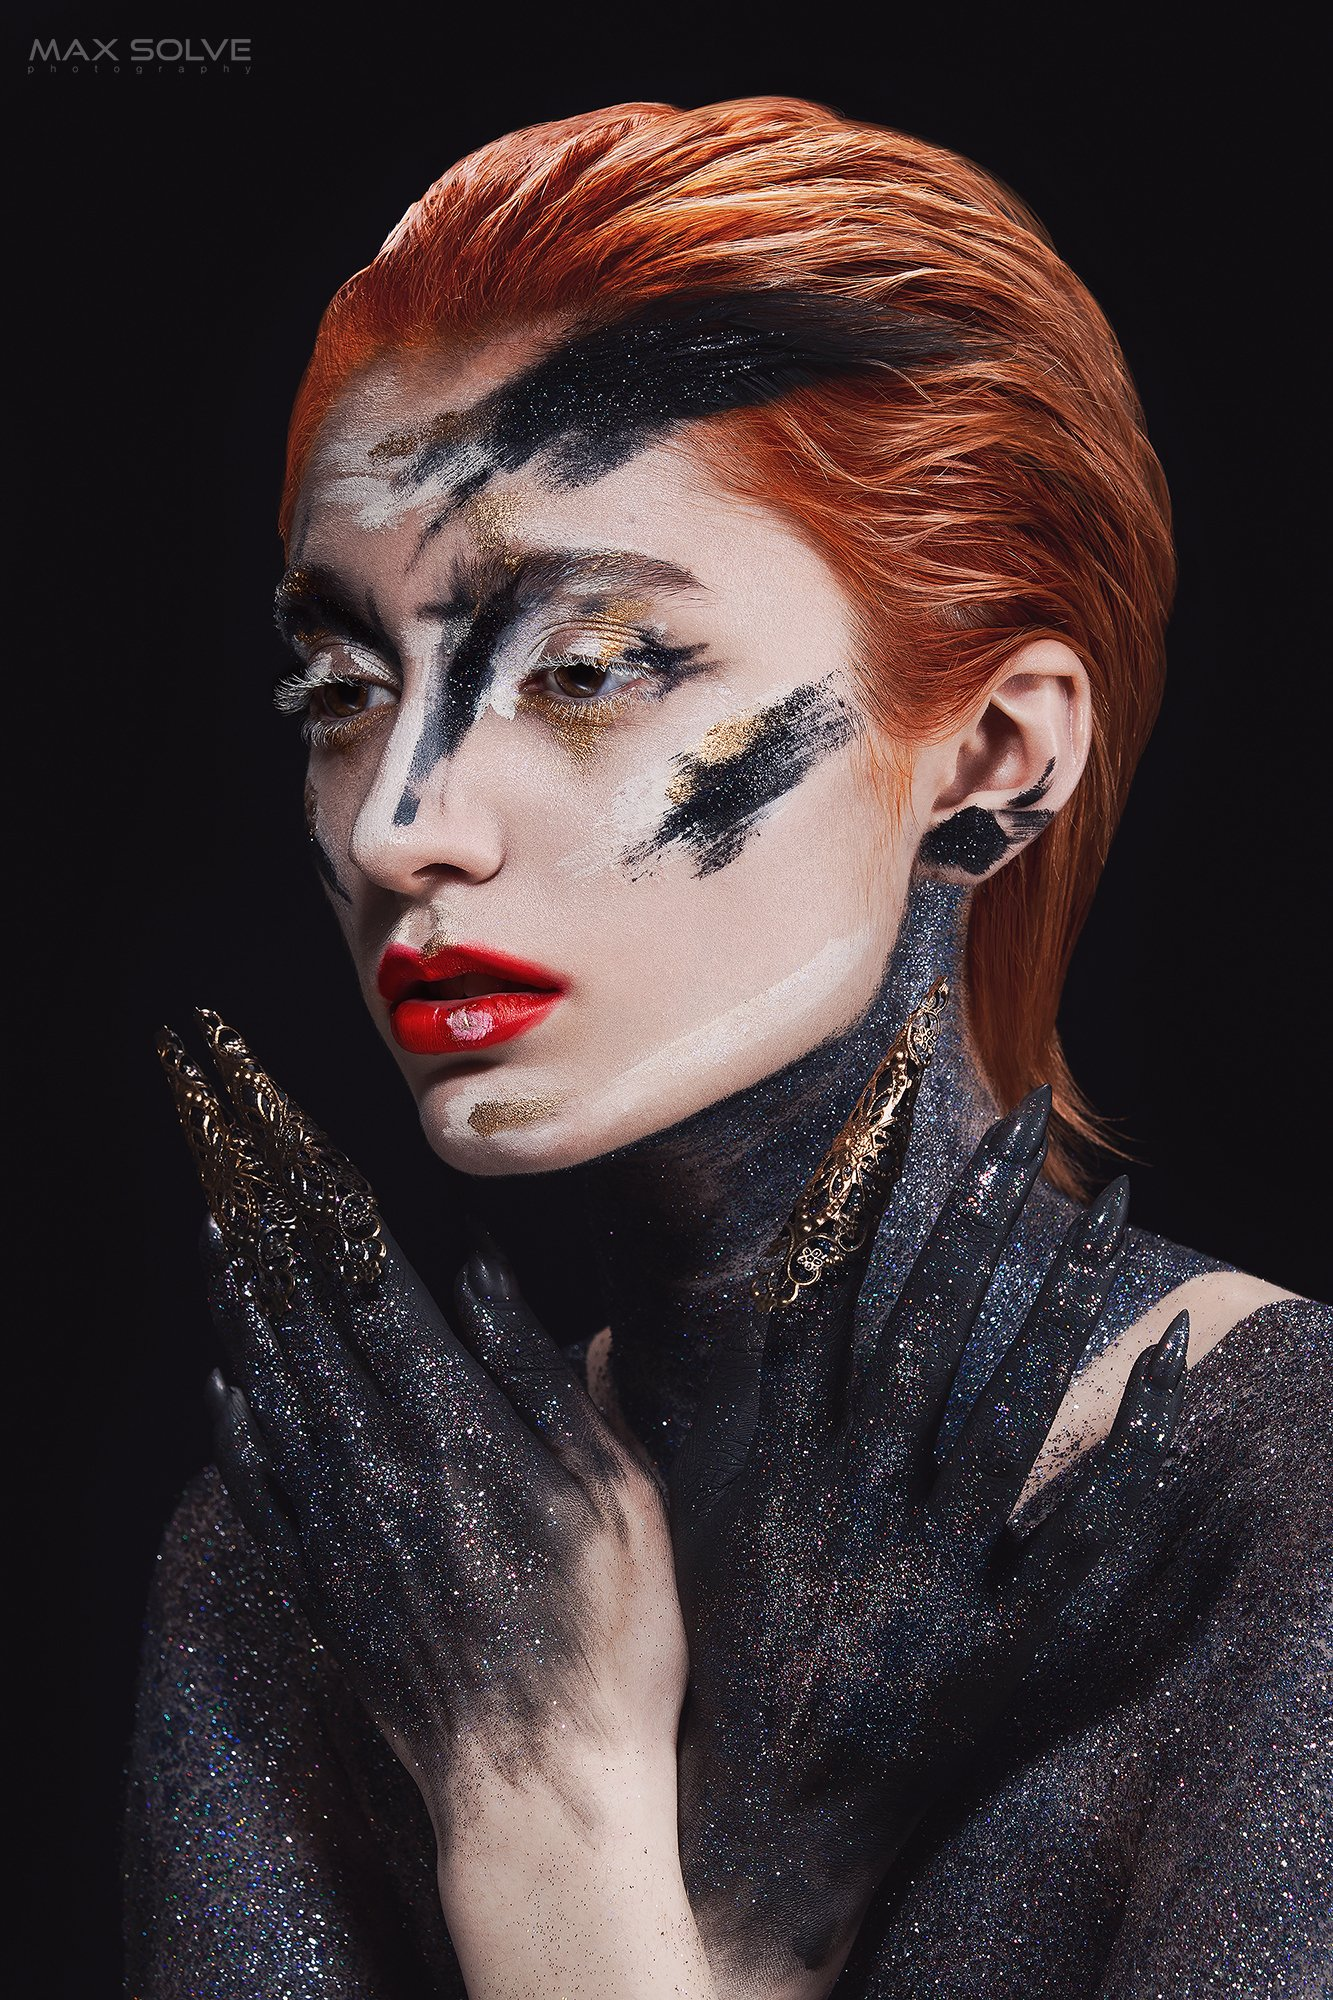 fashion, beauty, people, face, art, faceart, Max Solve